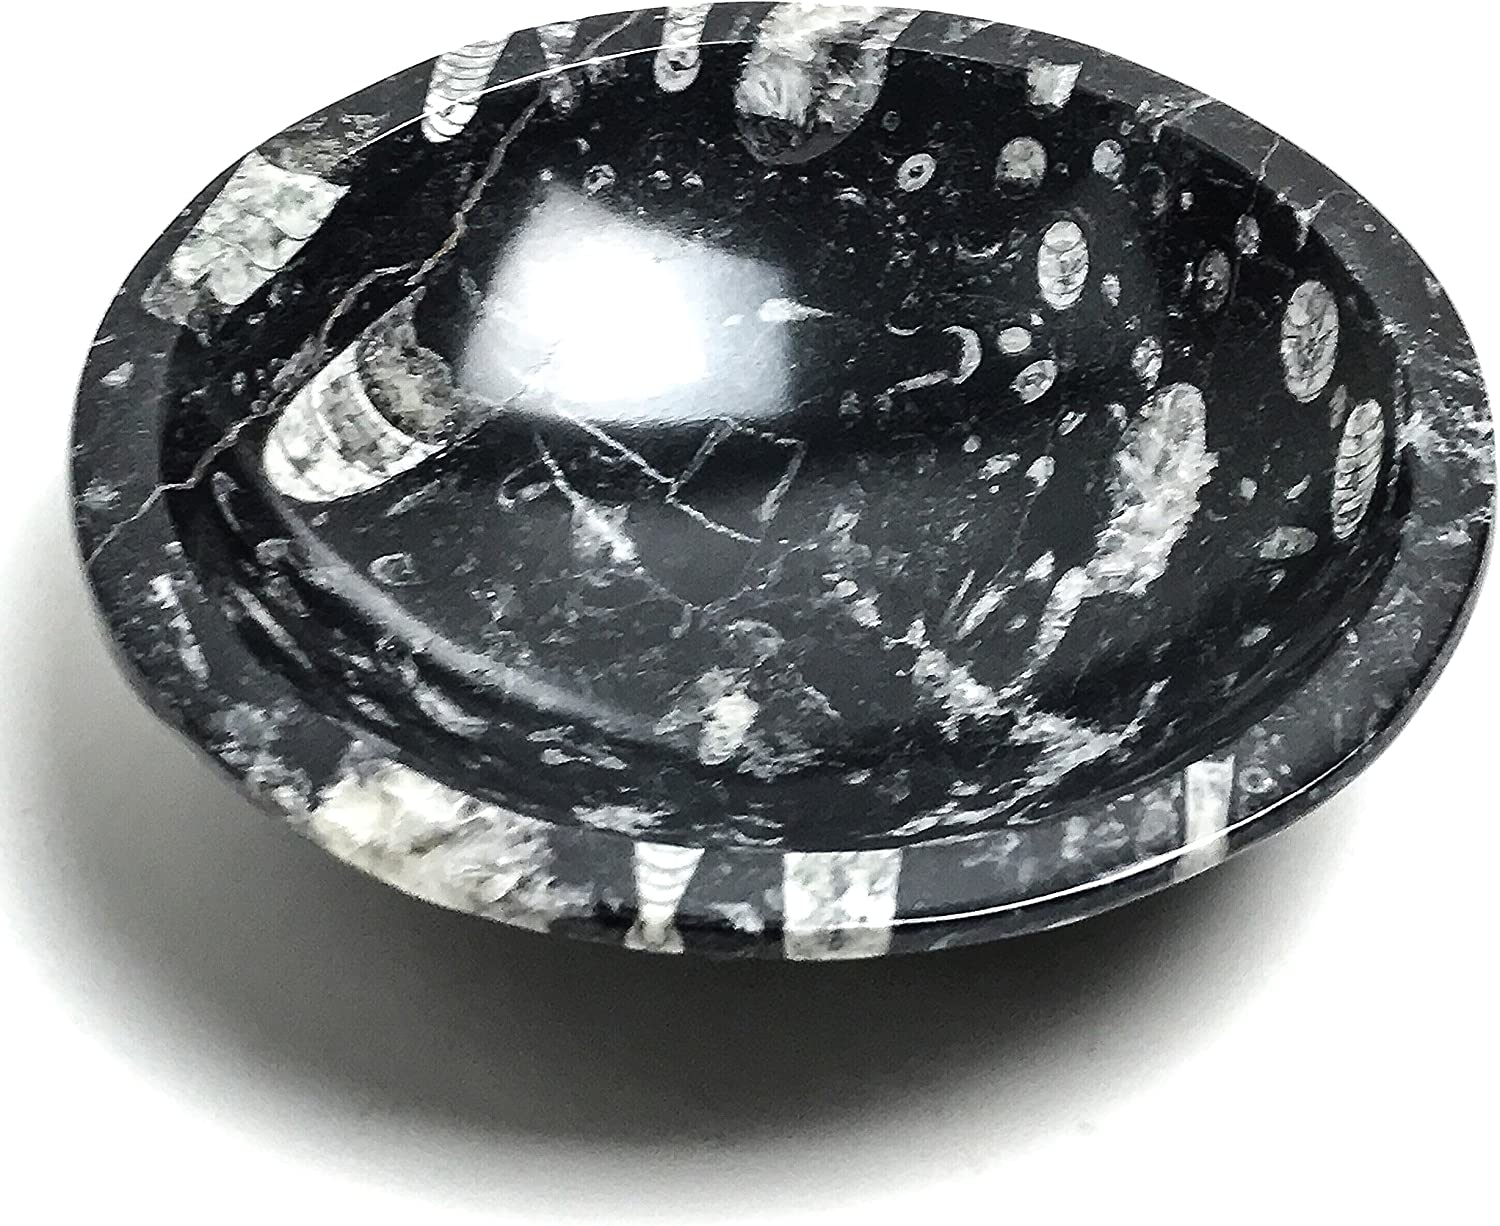 Fossil Bowl Seeing Bowl Scrying Bowl Orthoceras Bowl